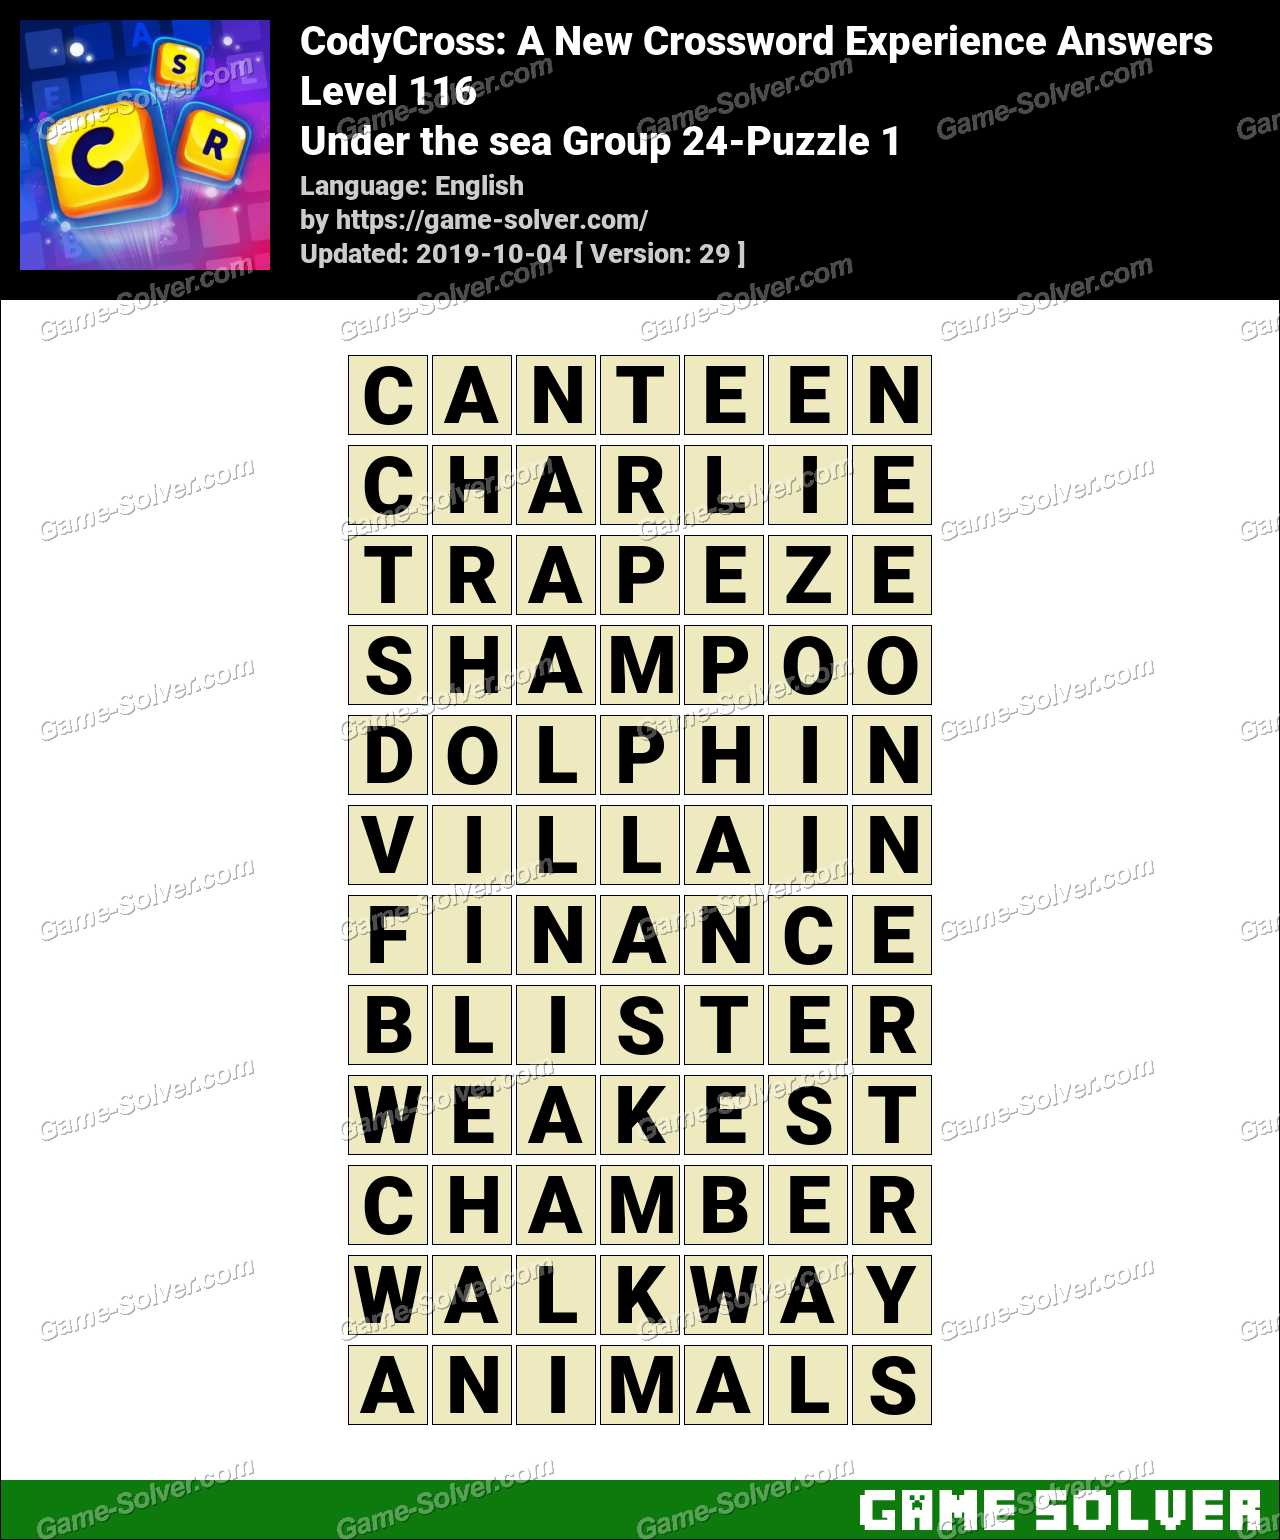 CodyCross Under the sea Group 24-Puzzle 1 Answers